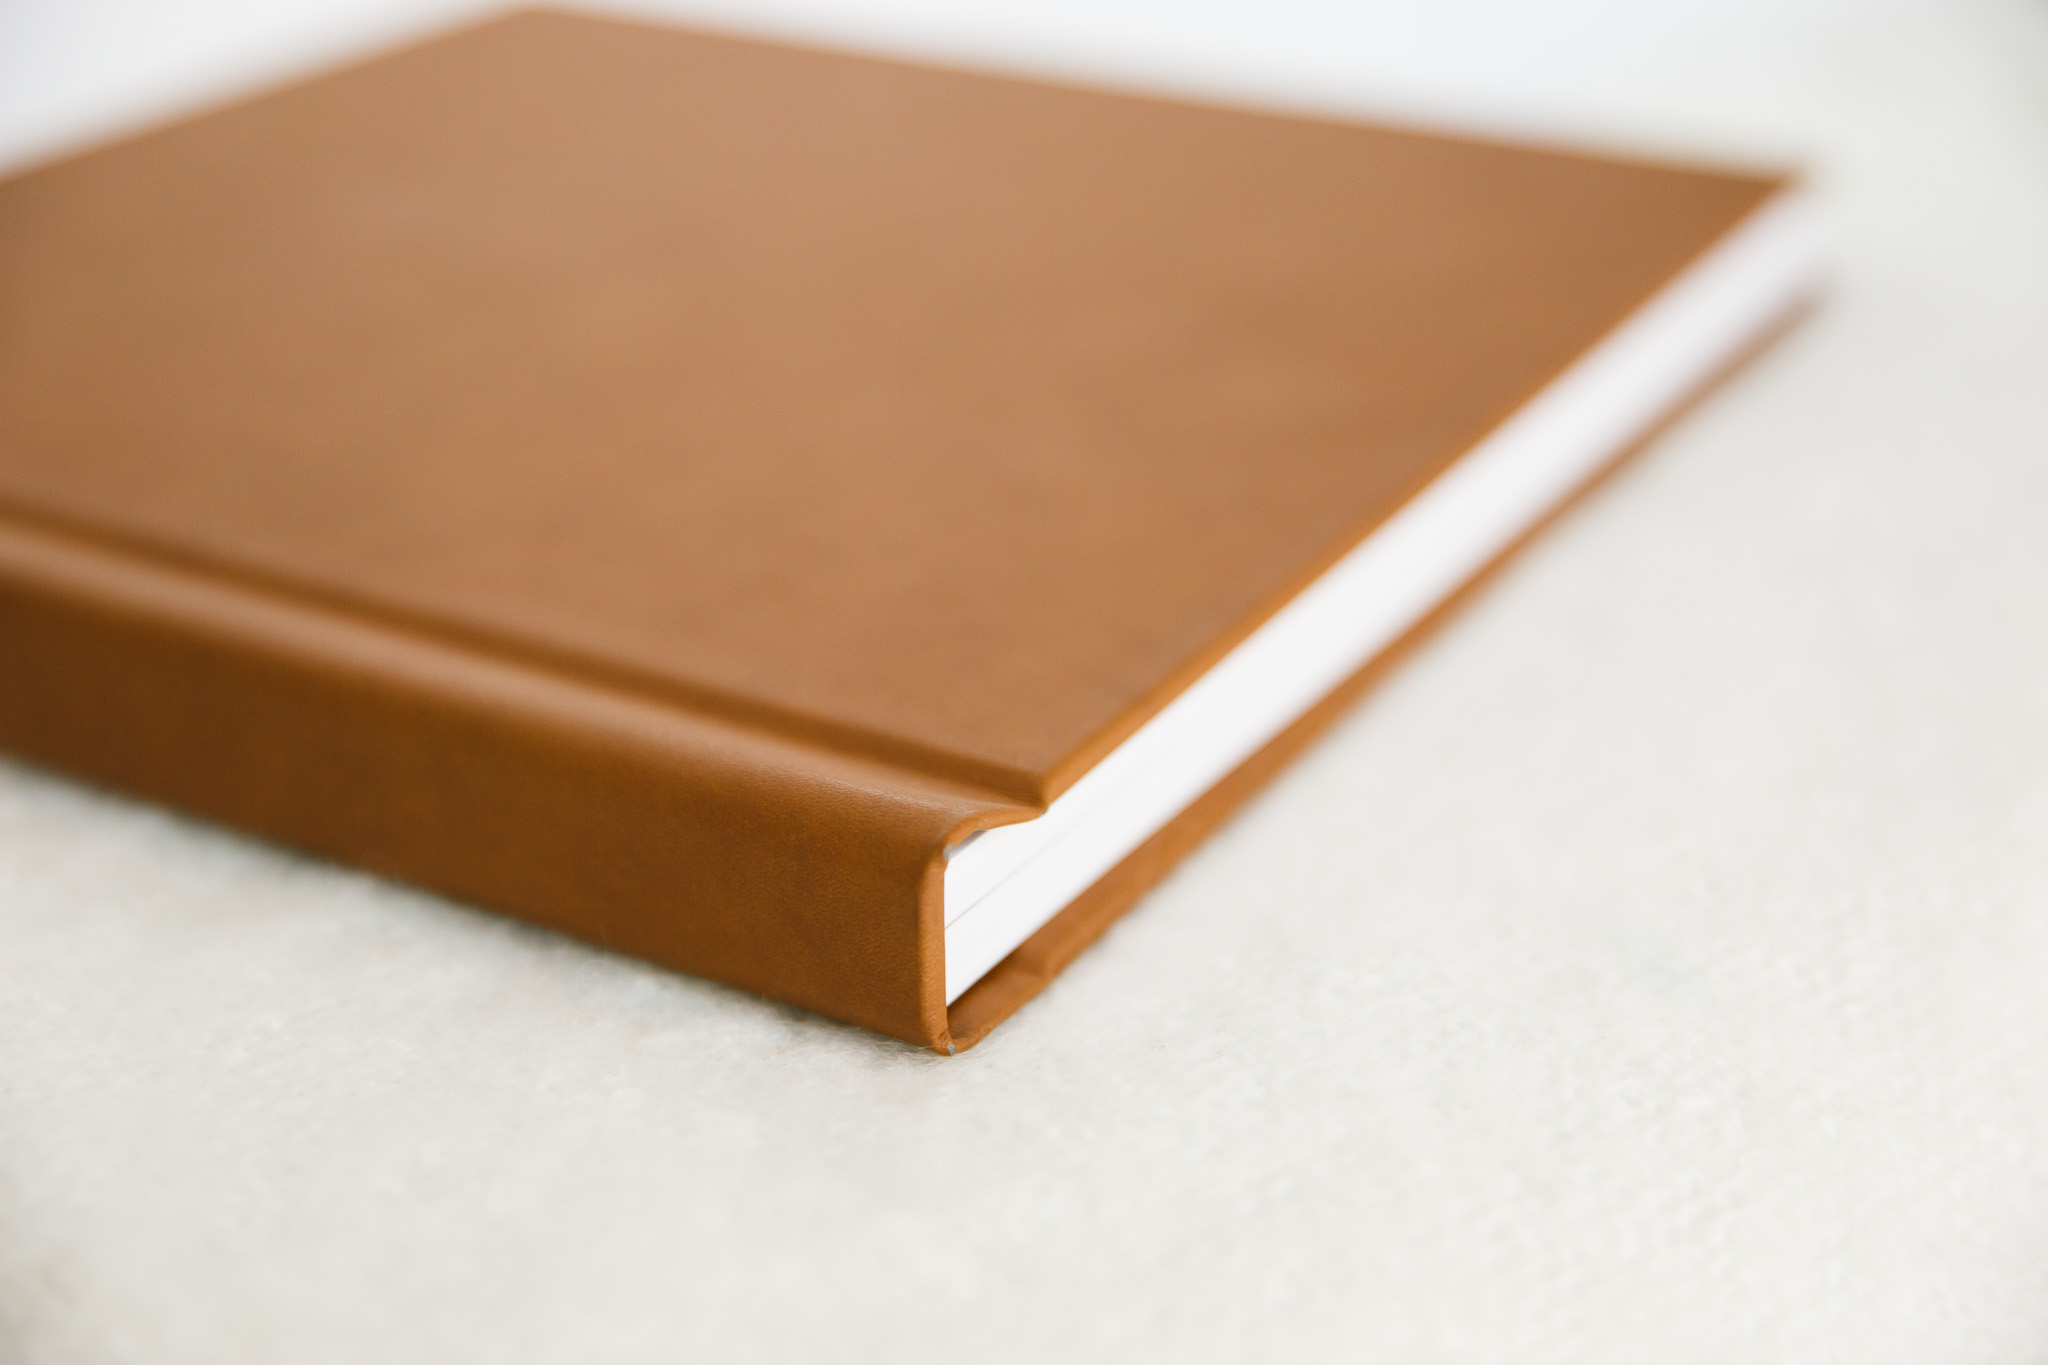 Album with Camel Vintage Leather Cover